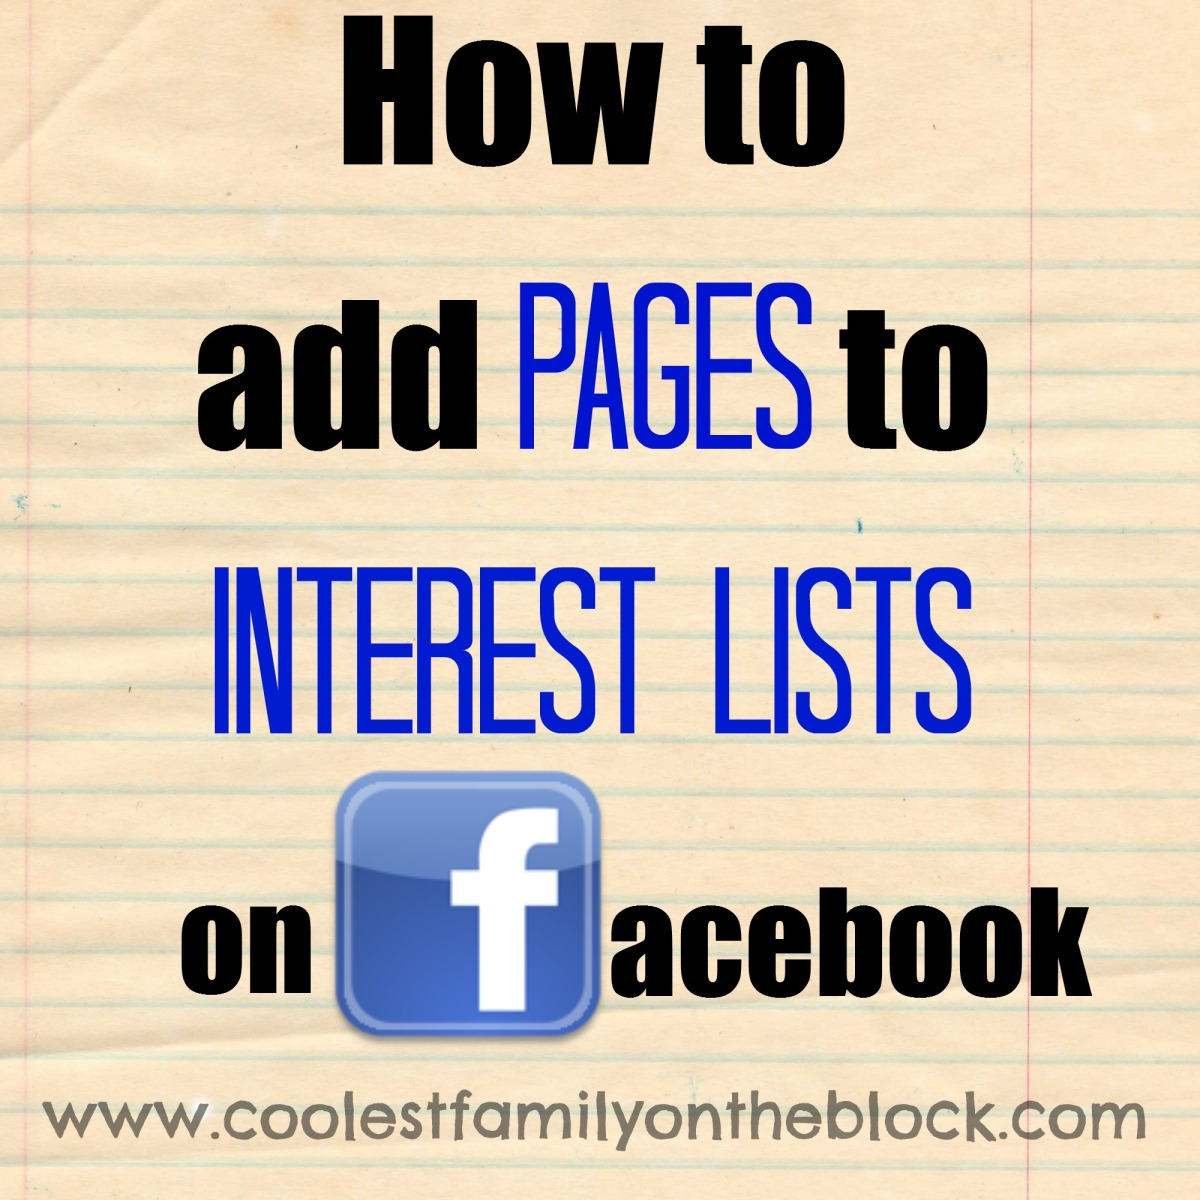 Adding Facebook Pages To Interest Lists on The Jellybean Prayer Free Printable